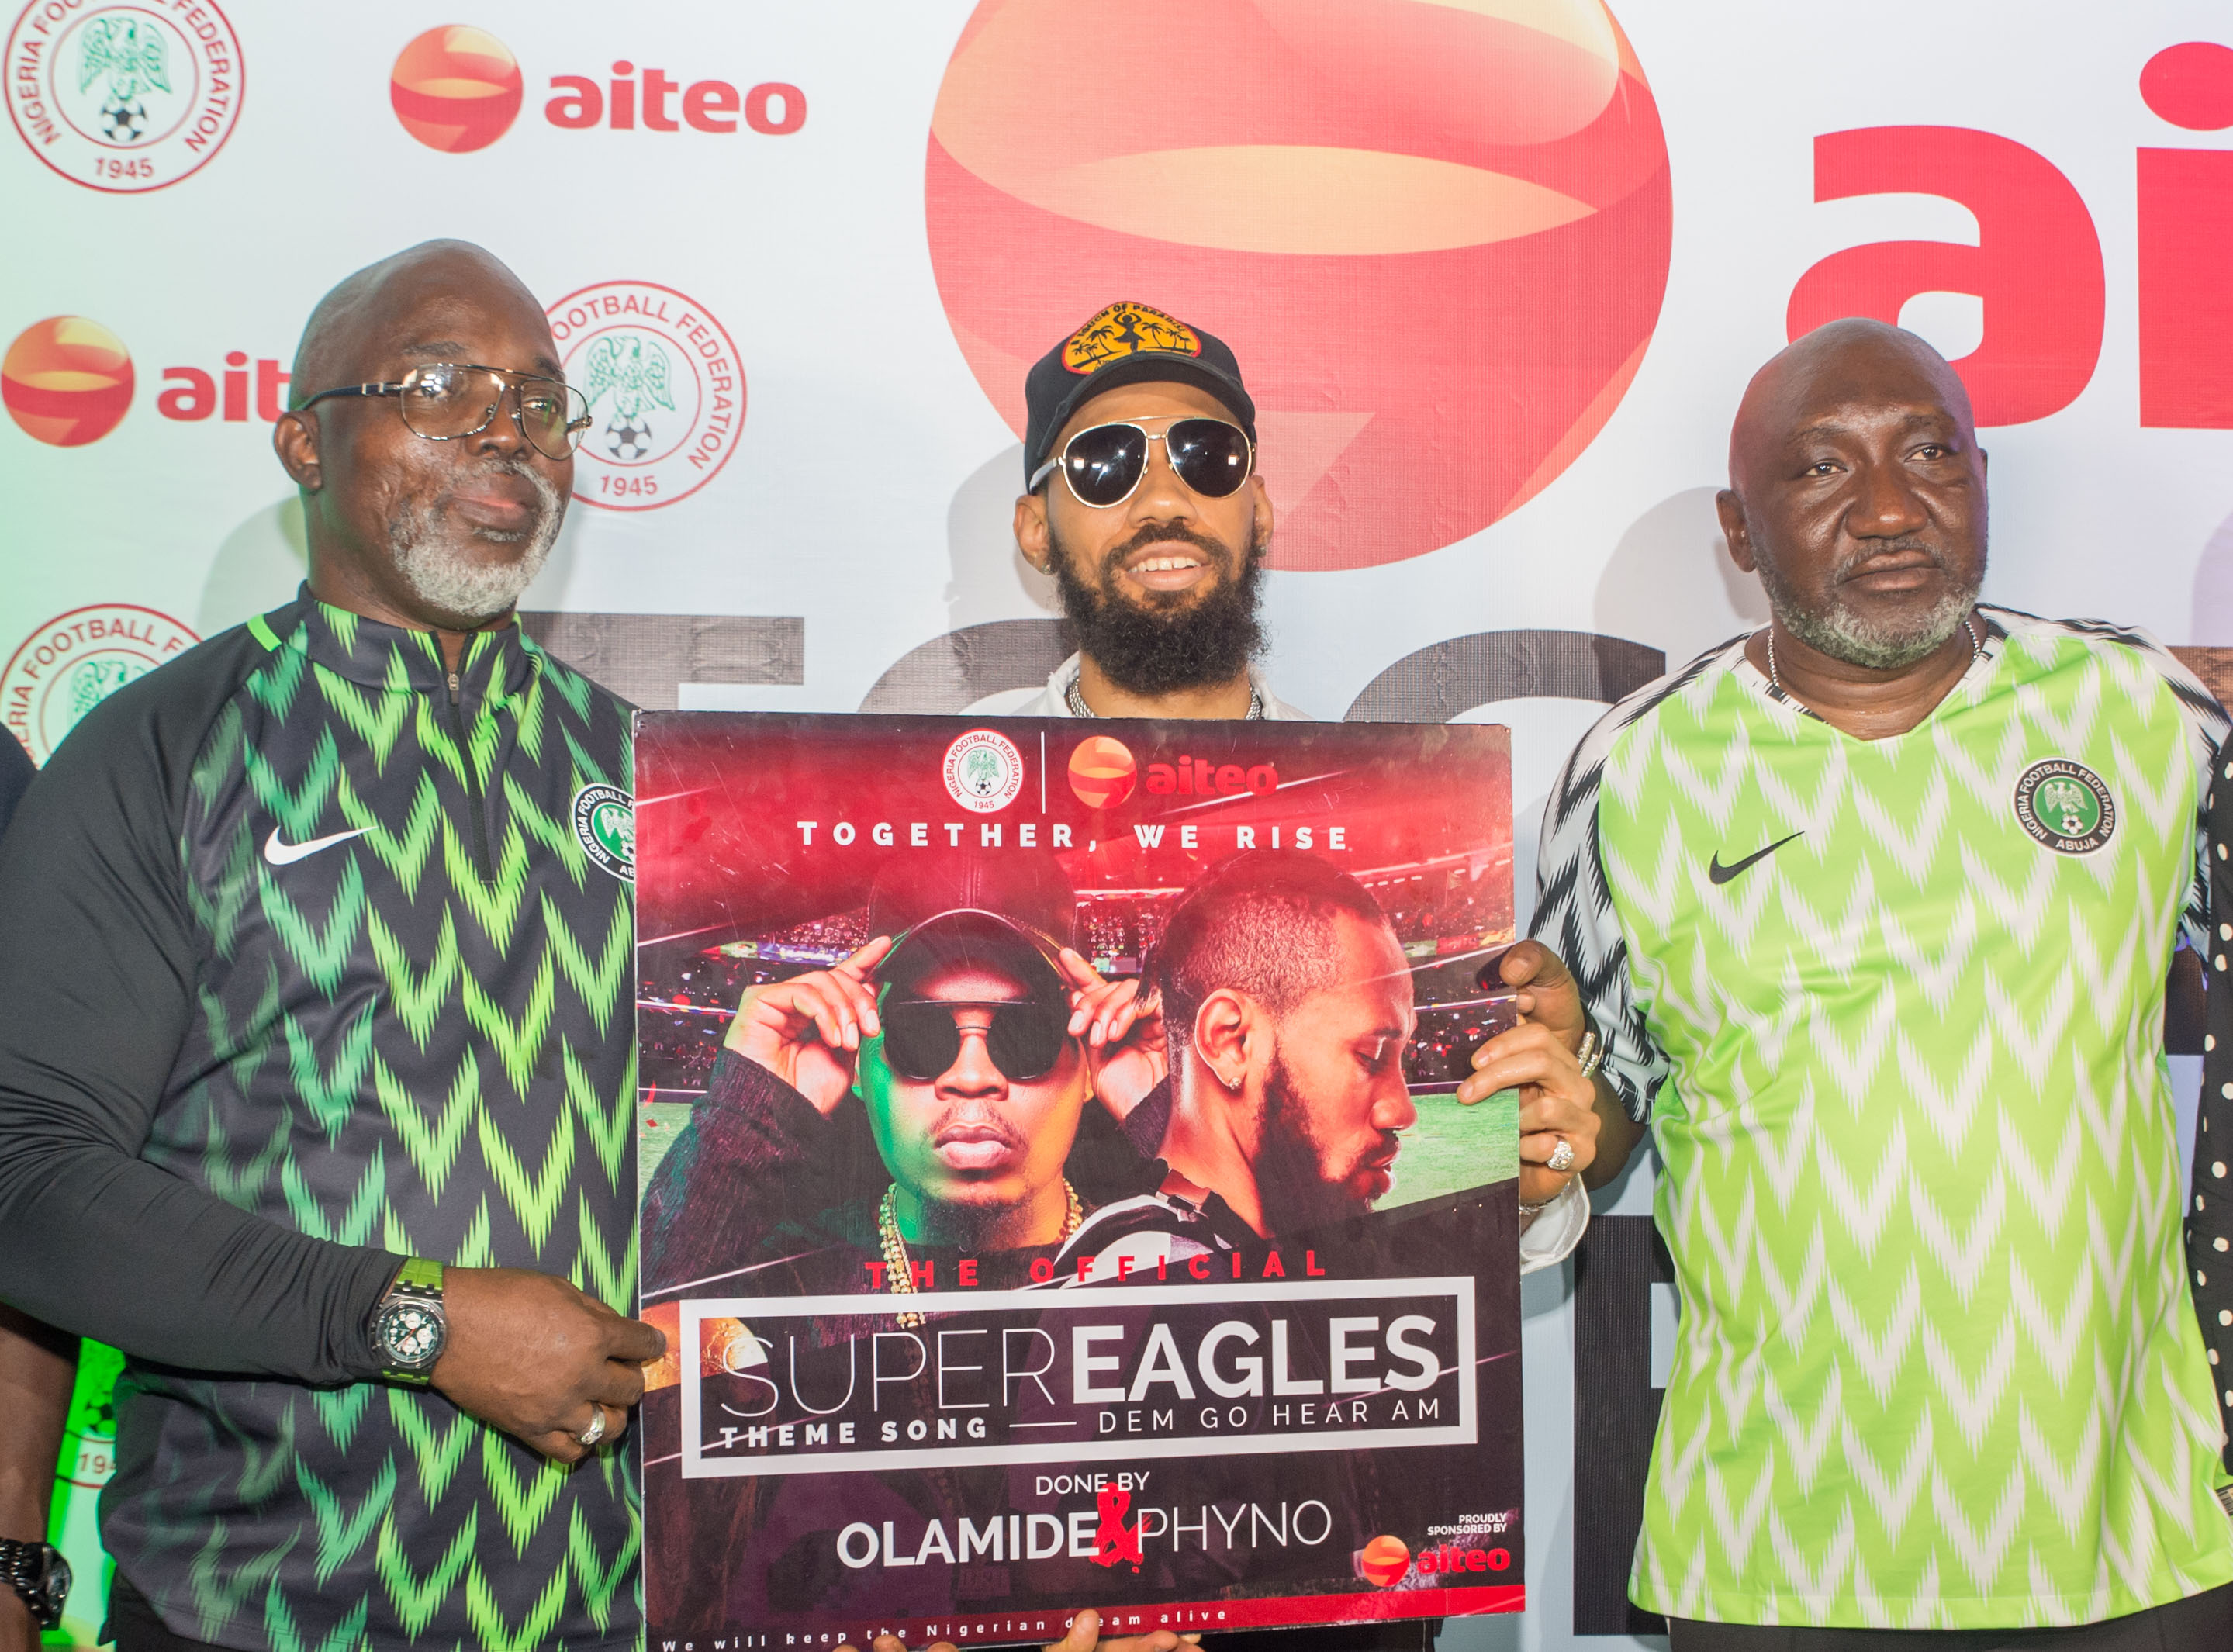 Aiteo sponsors Theme Song for Nigeria's 2018 World Cup Campaign